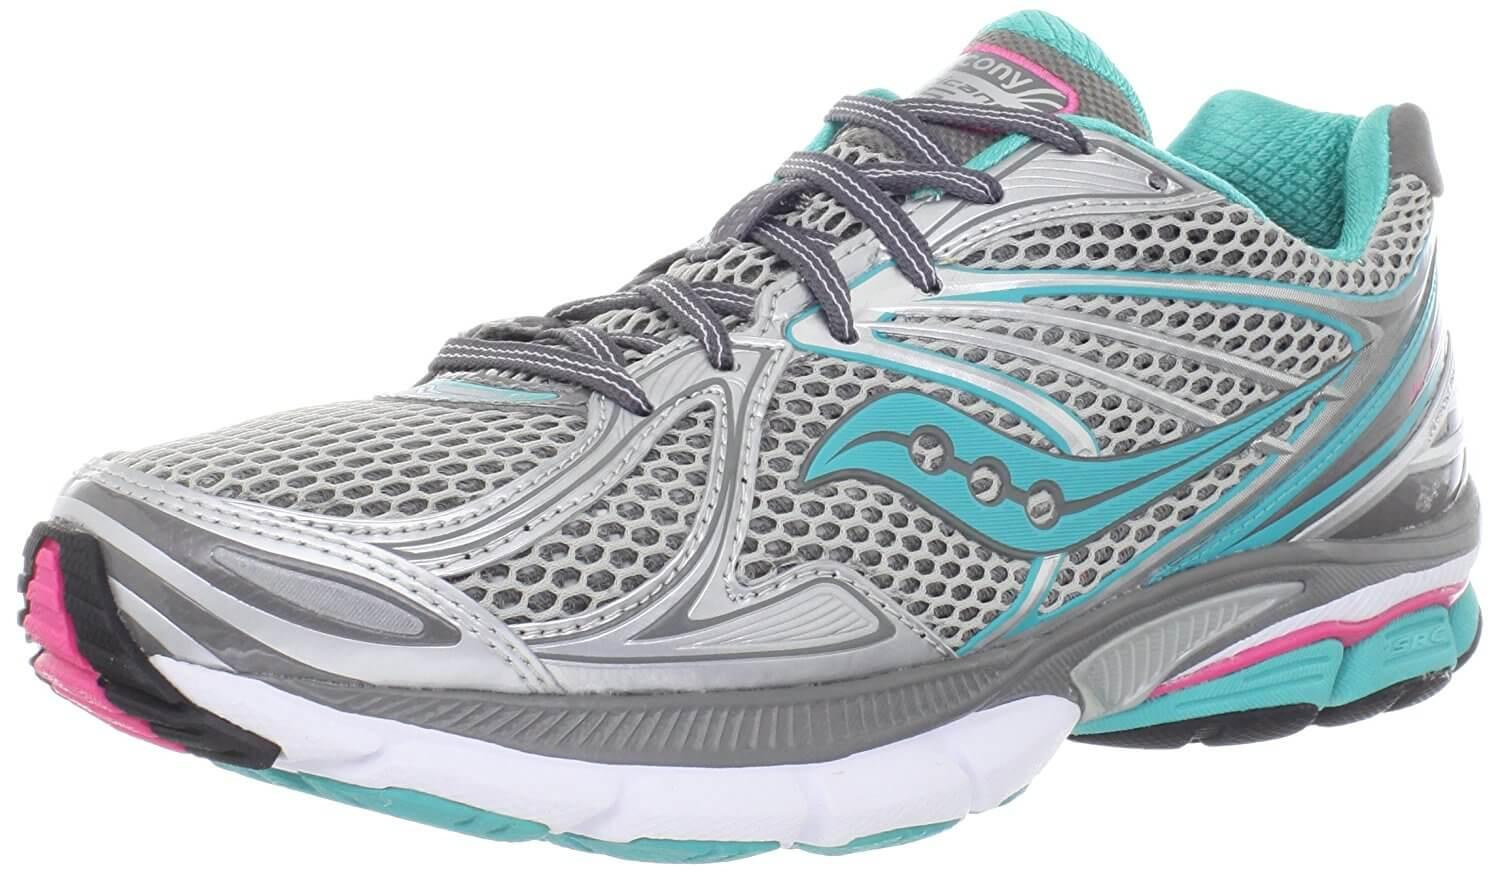 b57e512d Saucony Hurricane 15 Review - Buy or Not in July 2019?